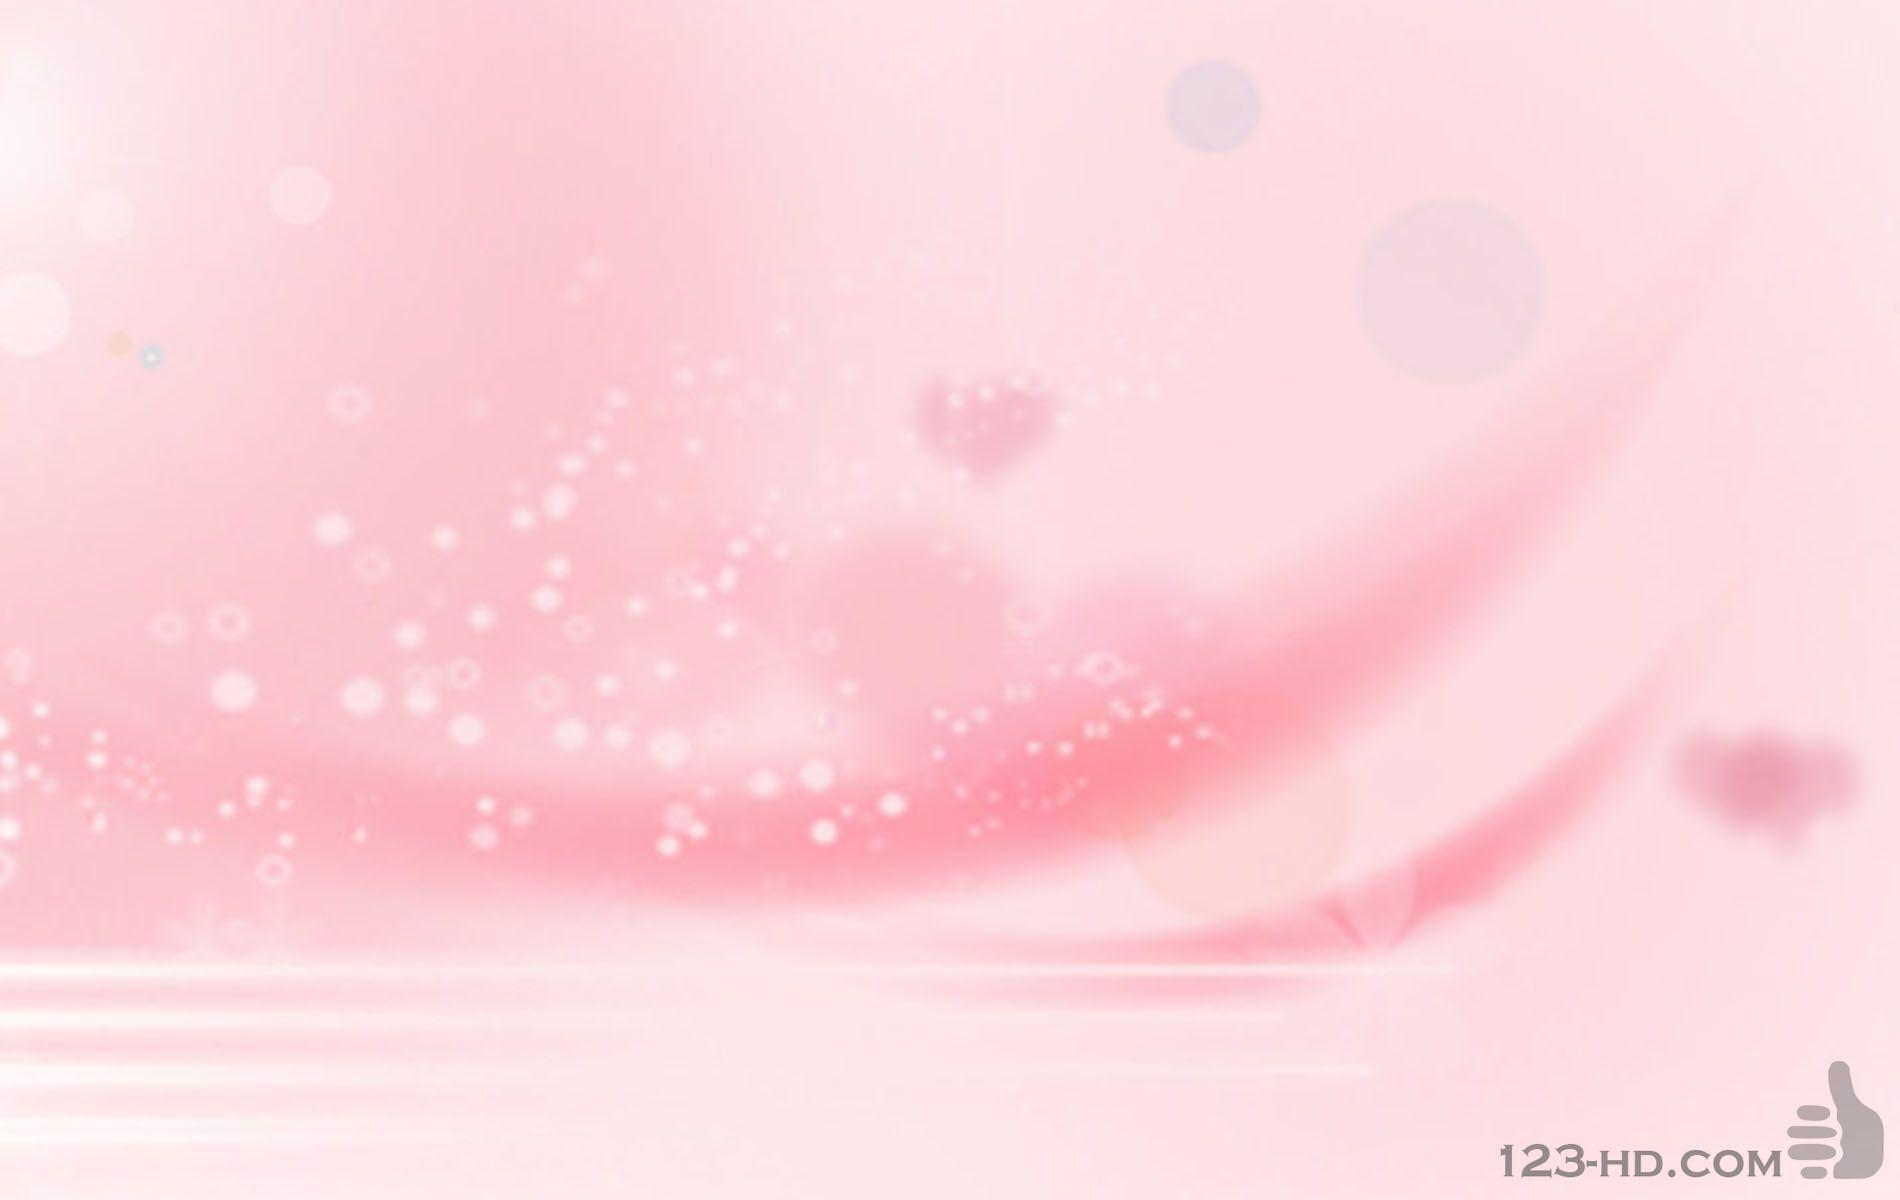 light pink background wallpapers - DriverLayer Search Engine